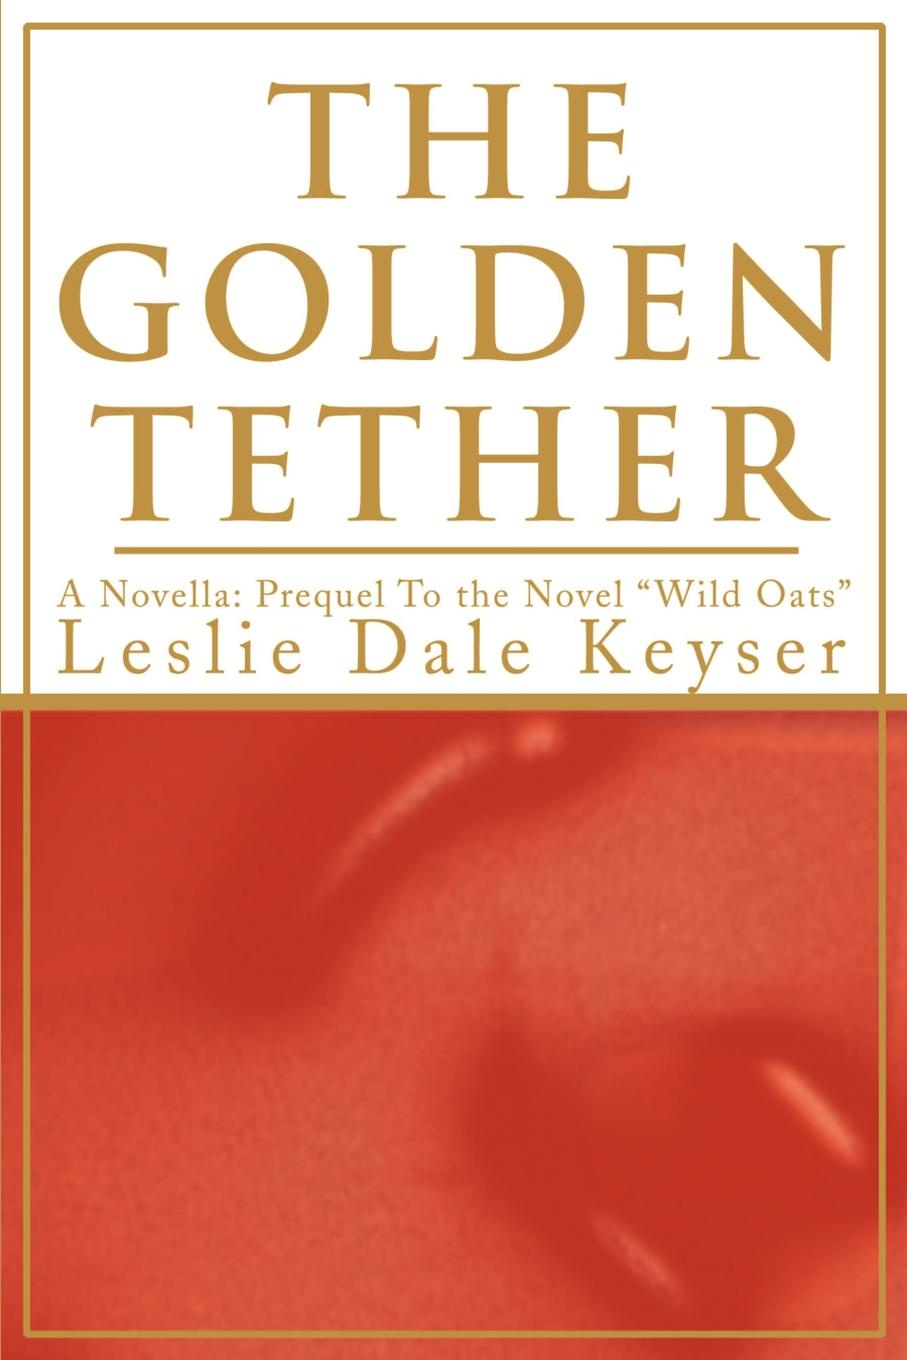 The Golden Tether. Leslie Dale Keyser